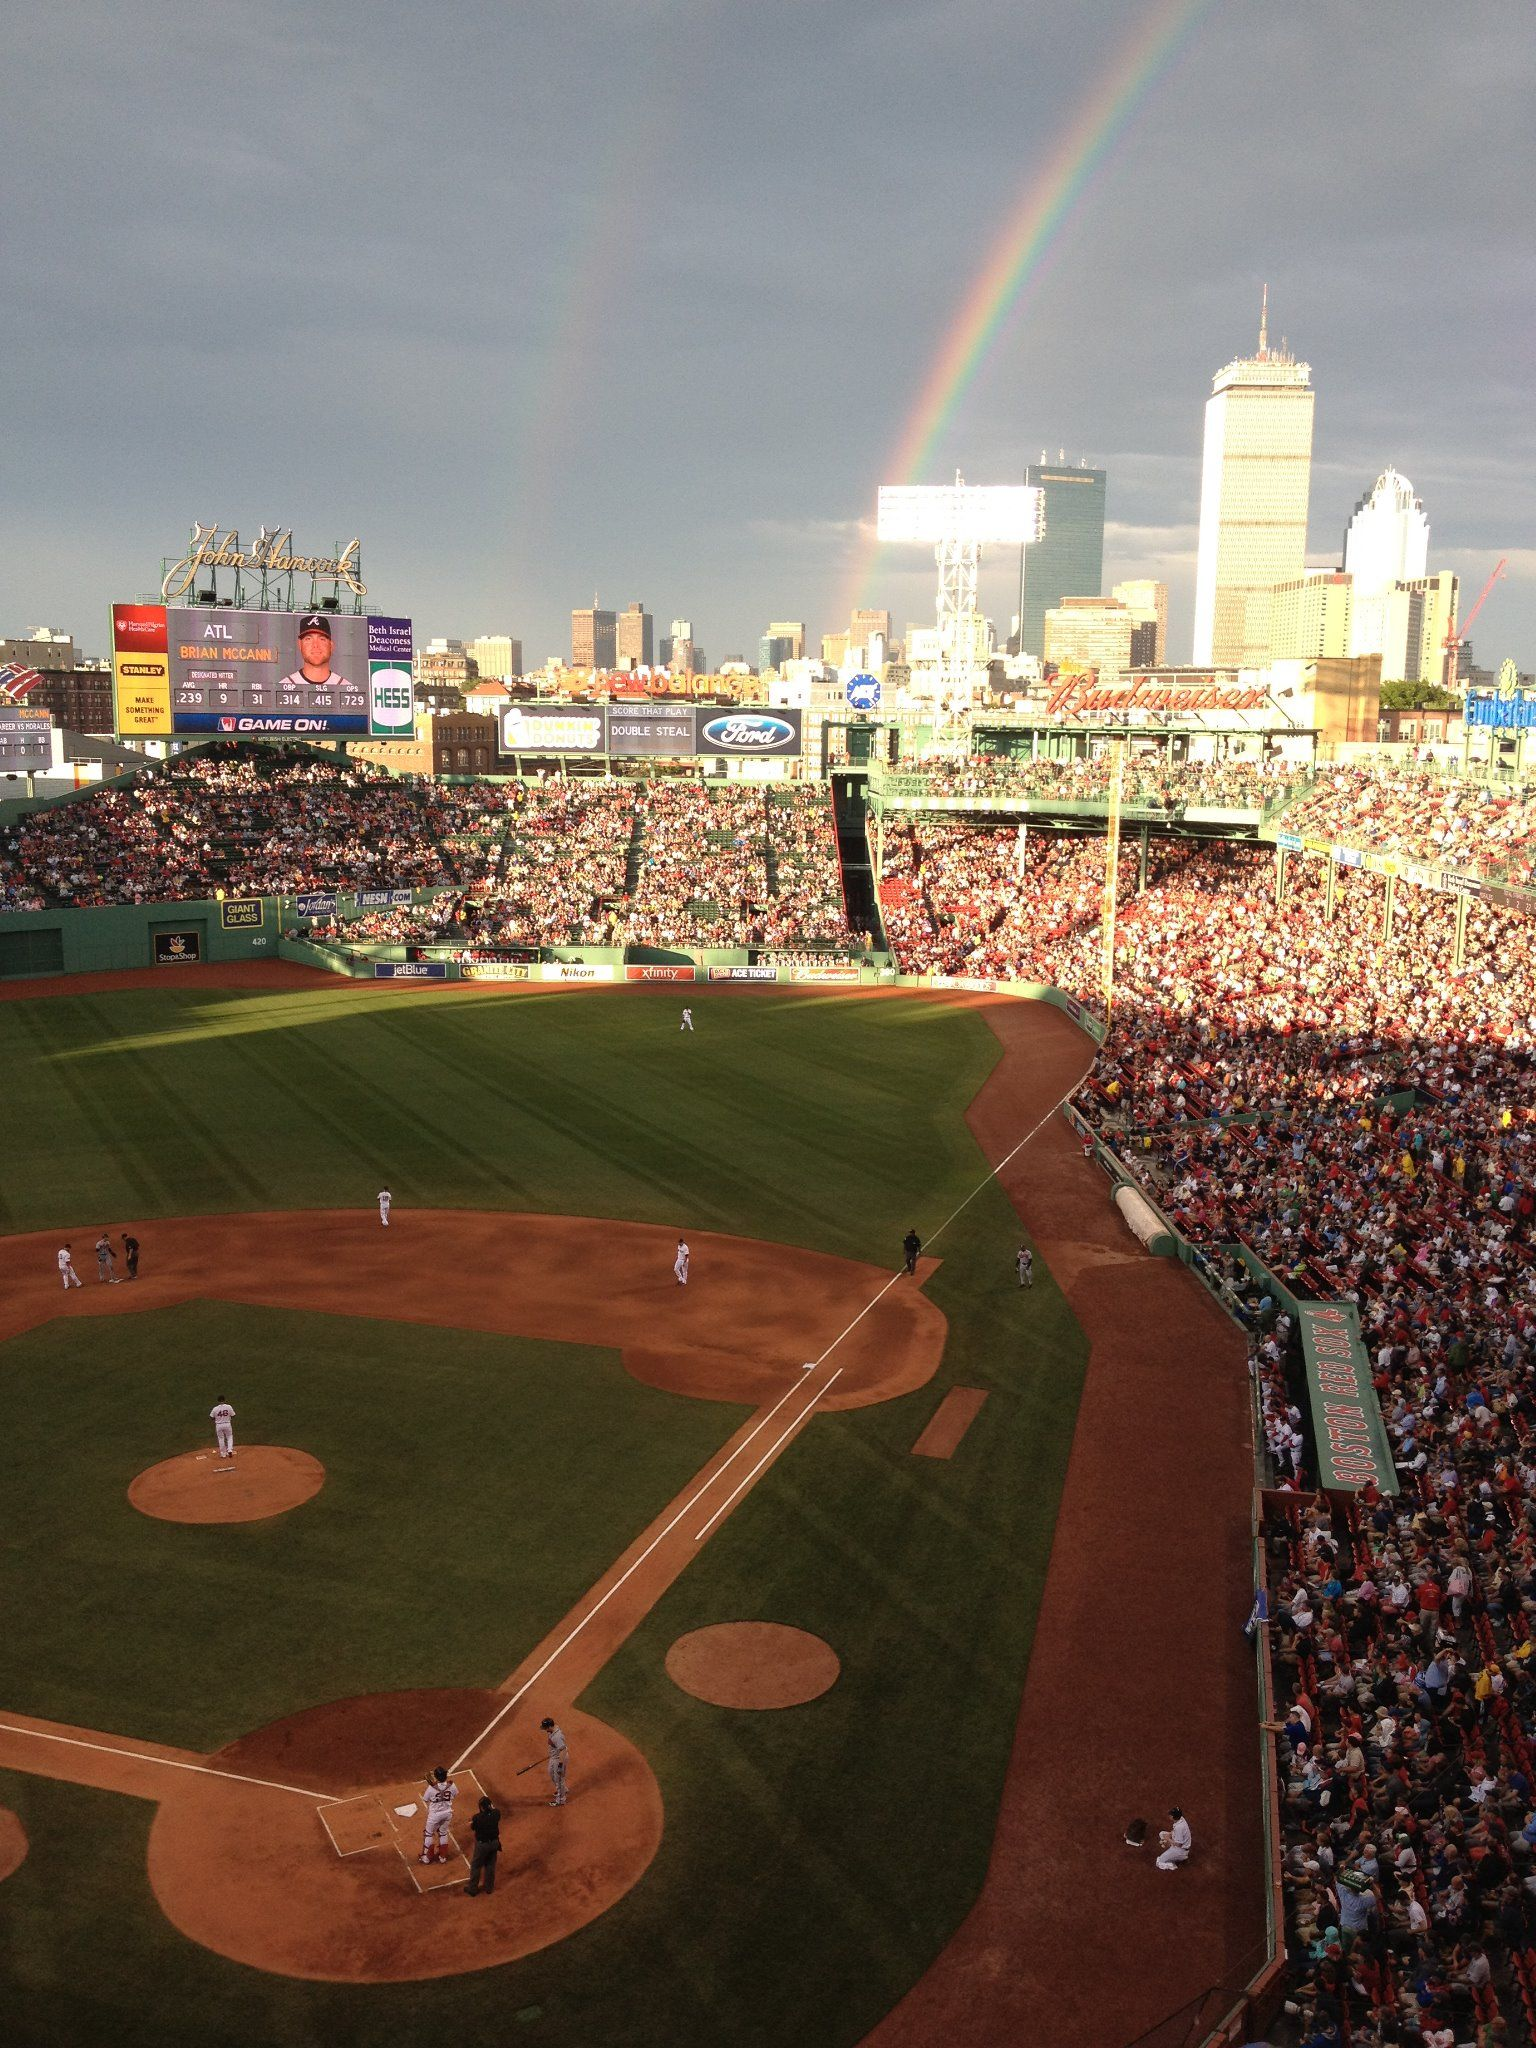 It\'s batter up at the home of the Red Sox, Fenway Park! Finish up ...